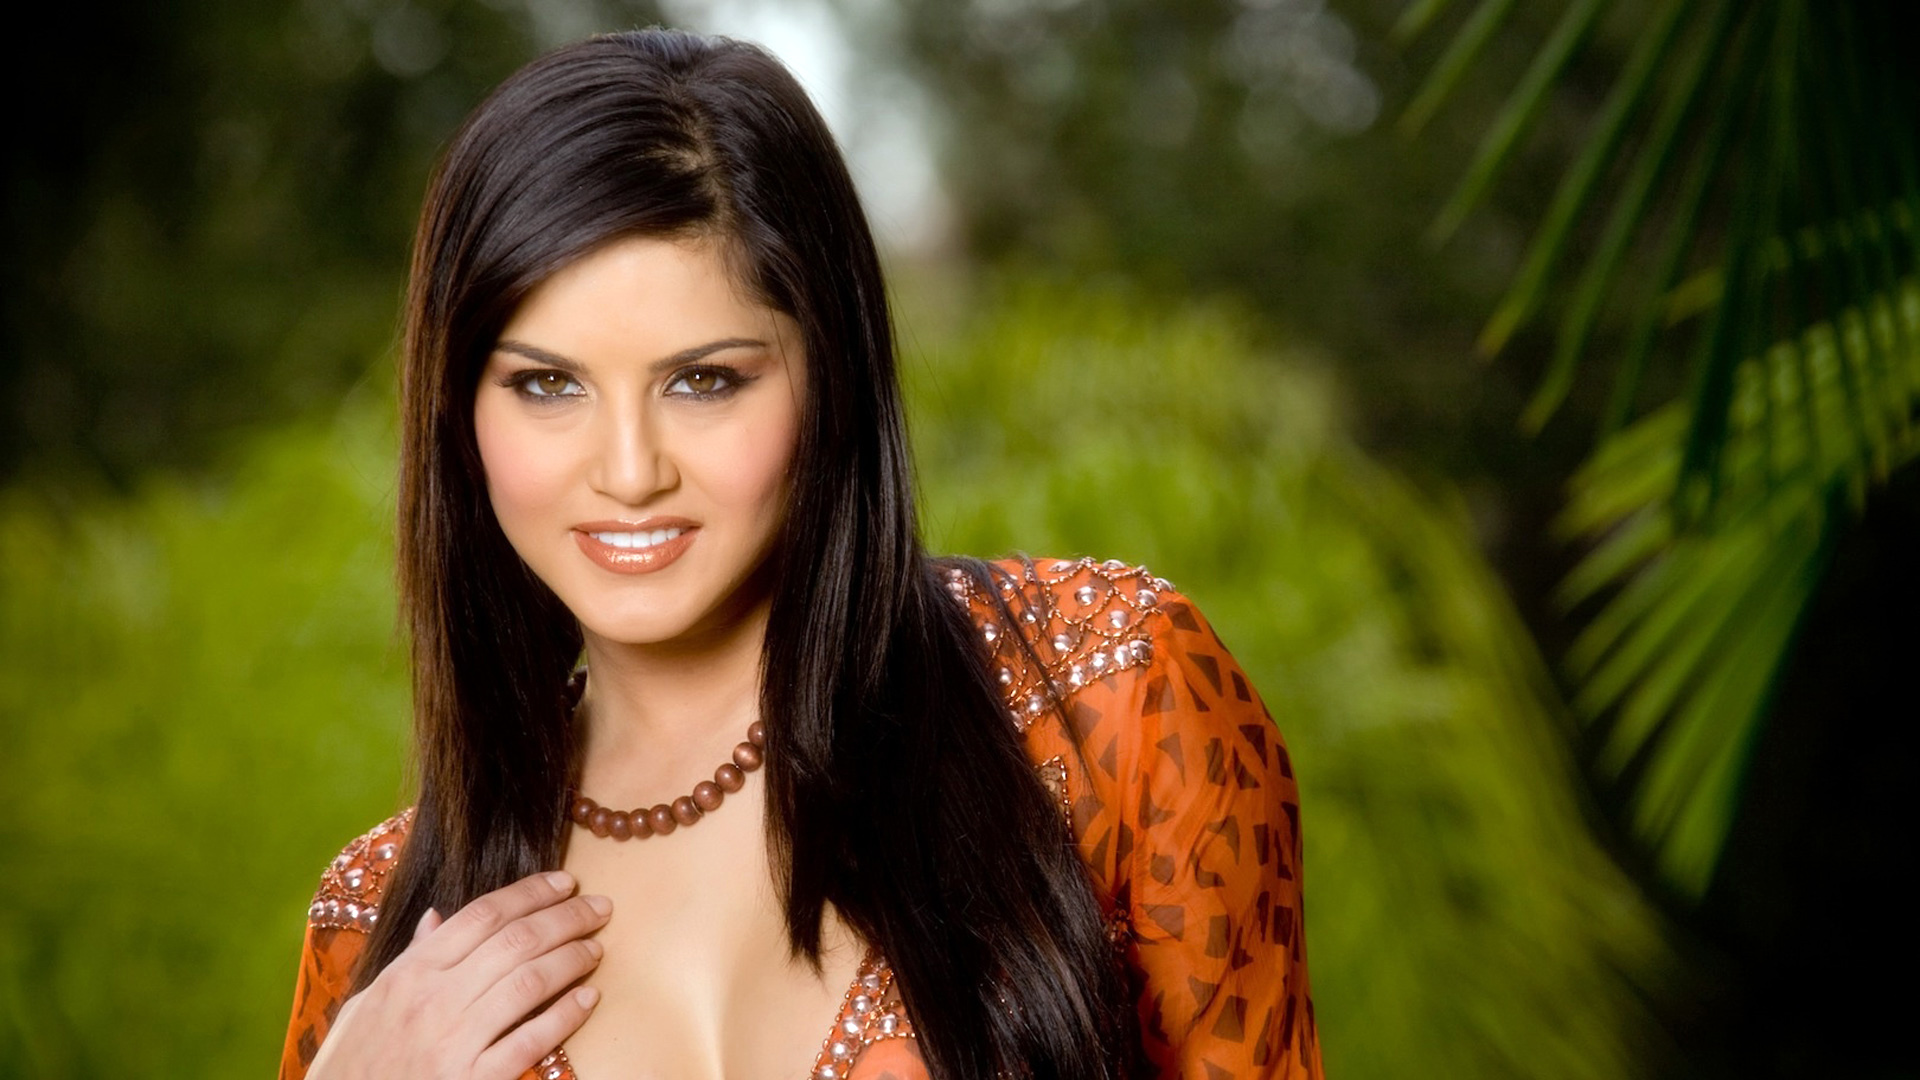 sunny leone hd wallpaper 51175 1920x1080 px ~ hdwallsource